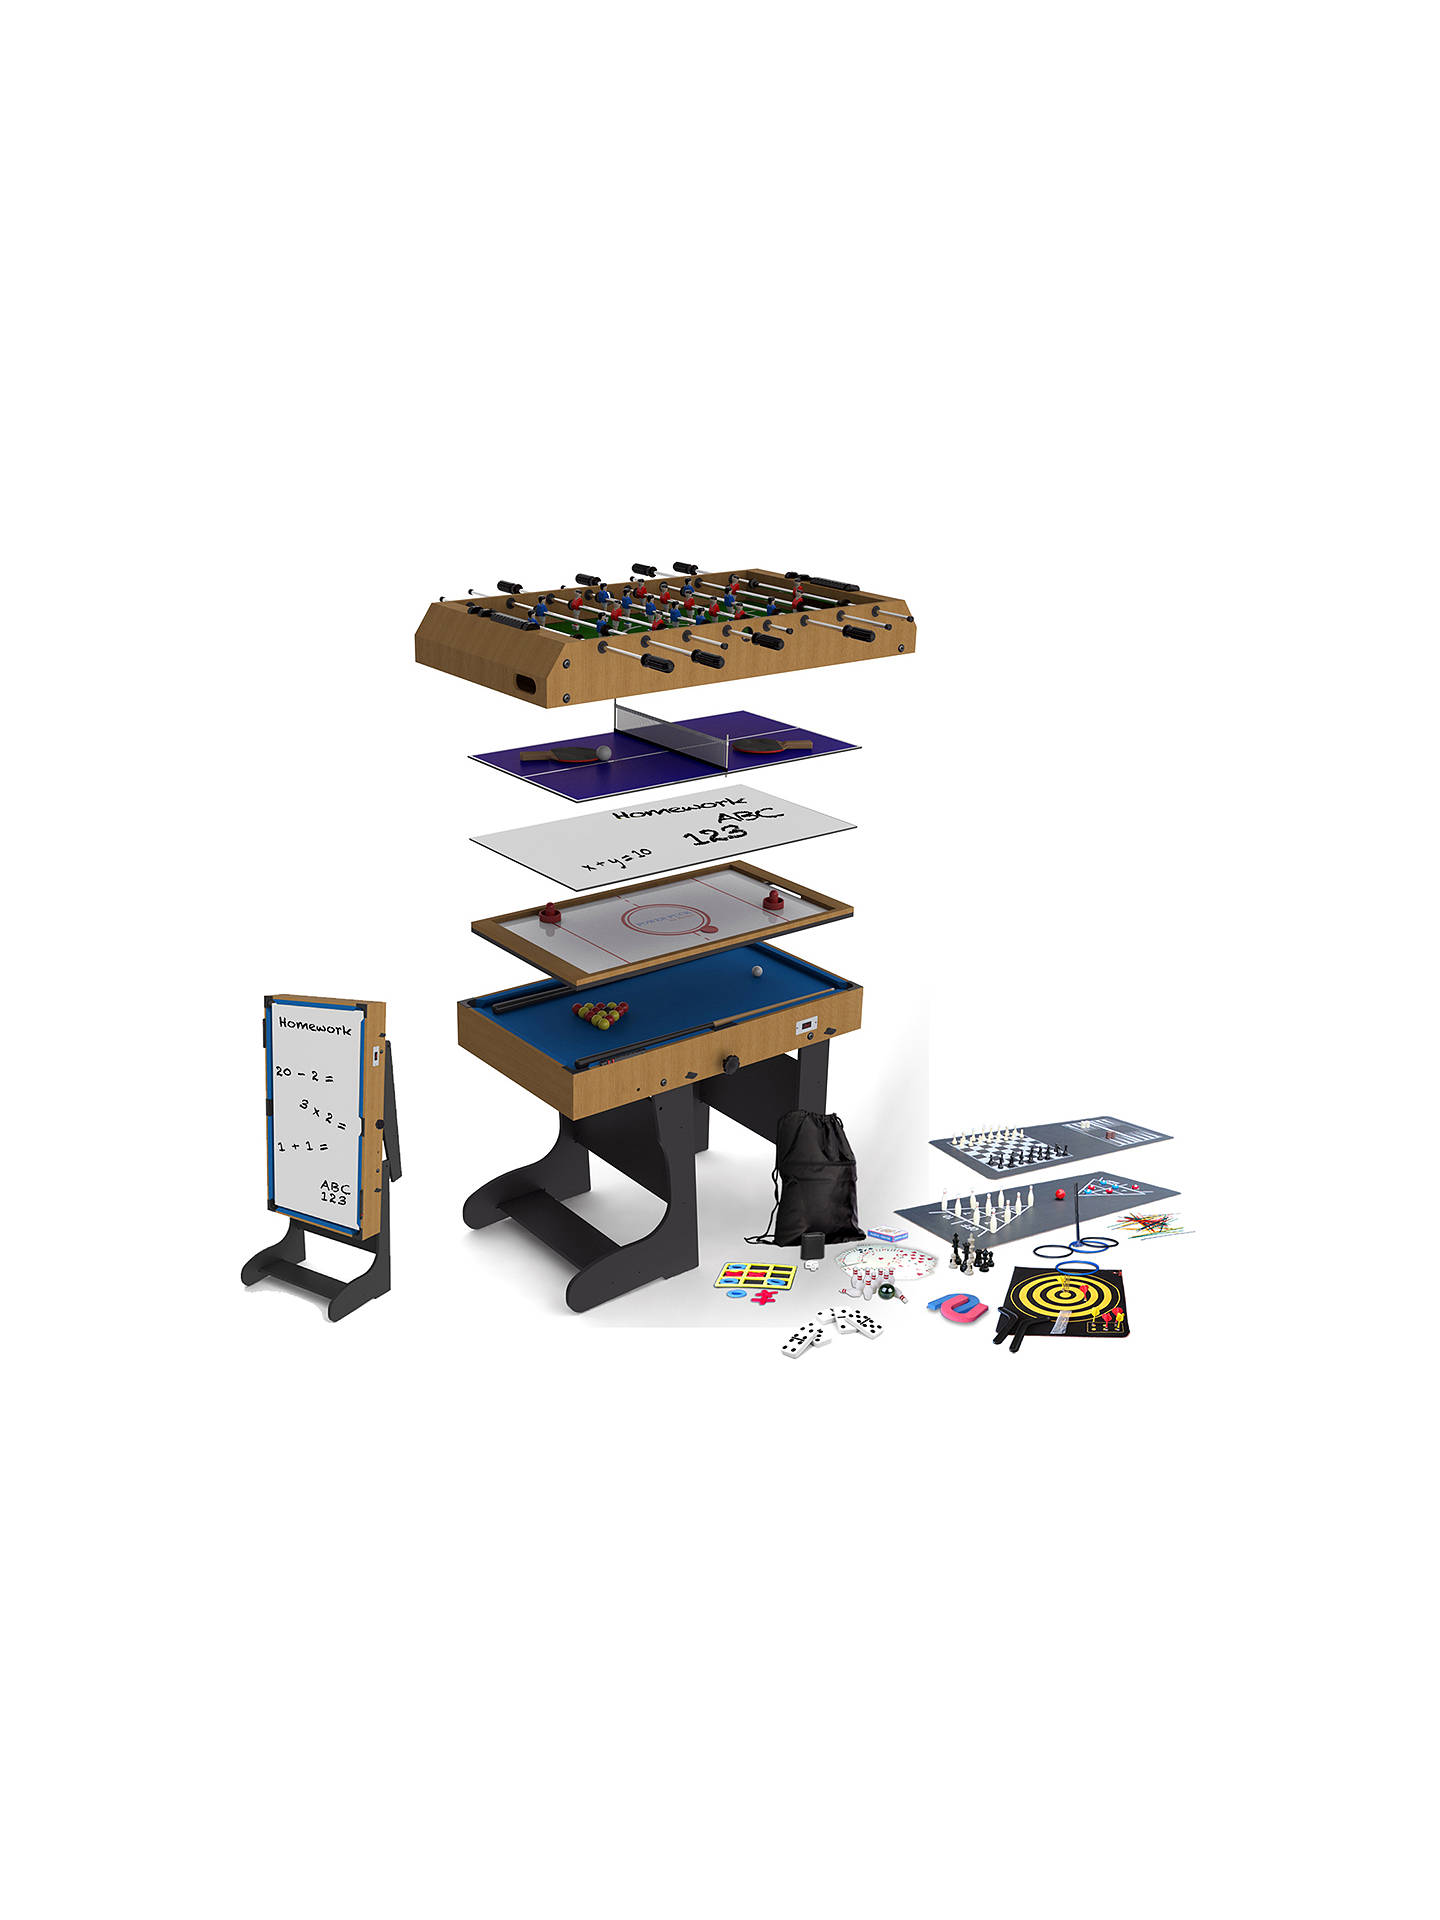 Tremendous Bce Riley 4 Foot Folding 21 In 1 Multi Game Table Home Interior And Landscaping Elinuenasavecom